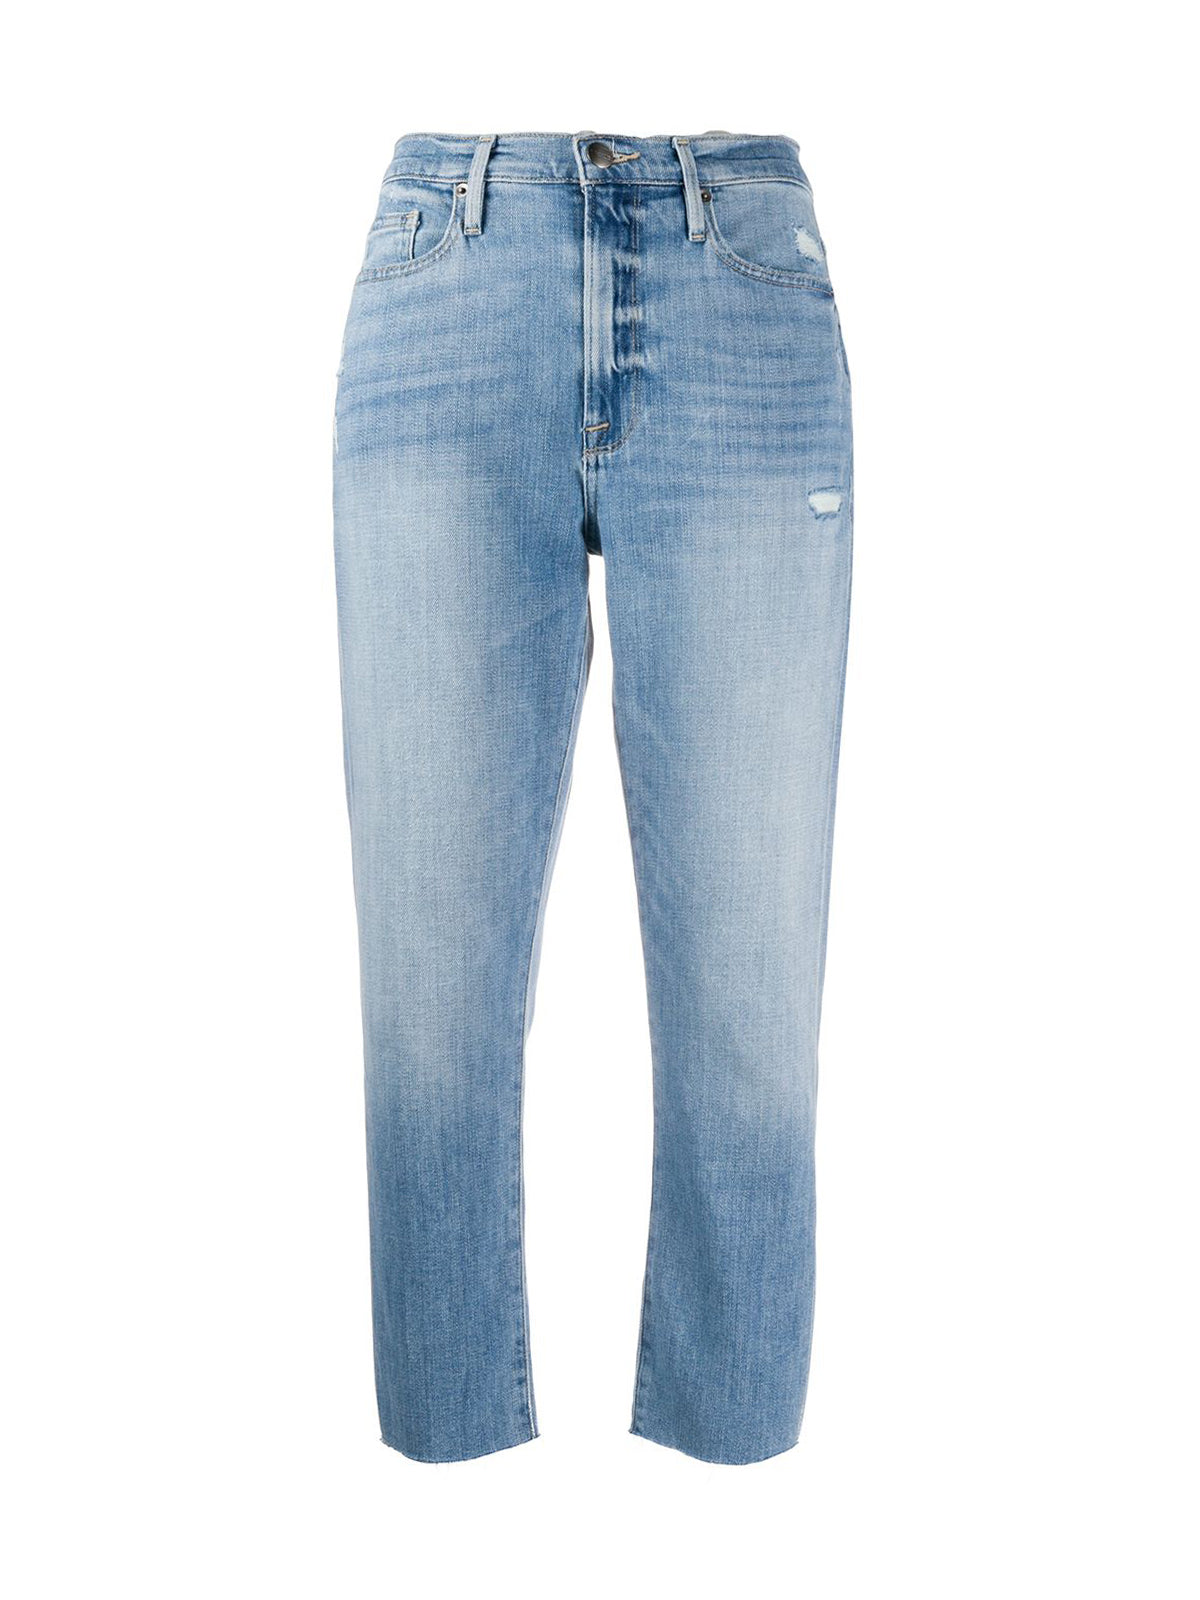 WALDEN ROCK CROPPED JEANS